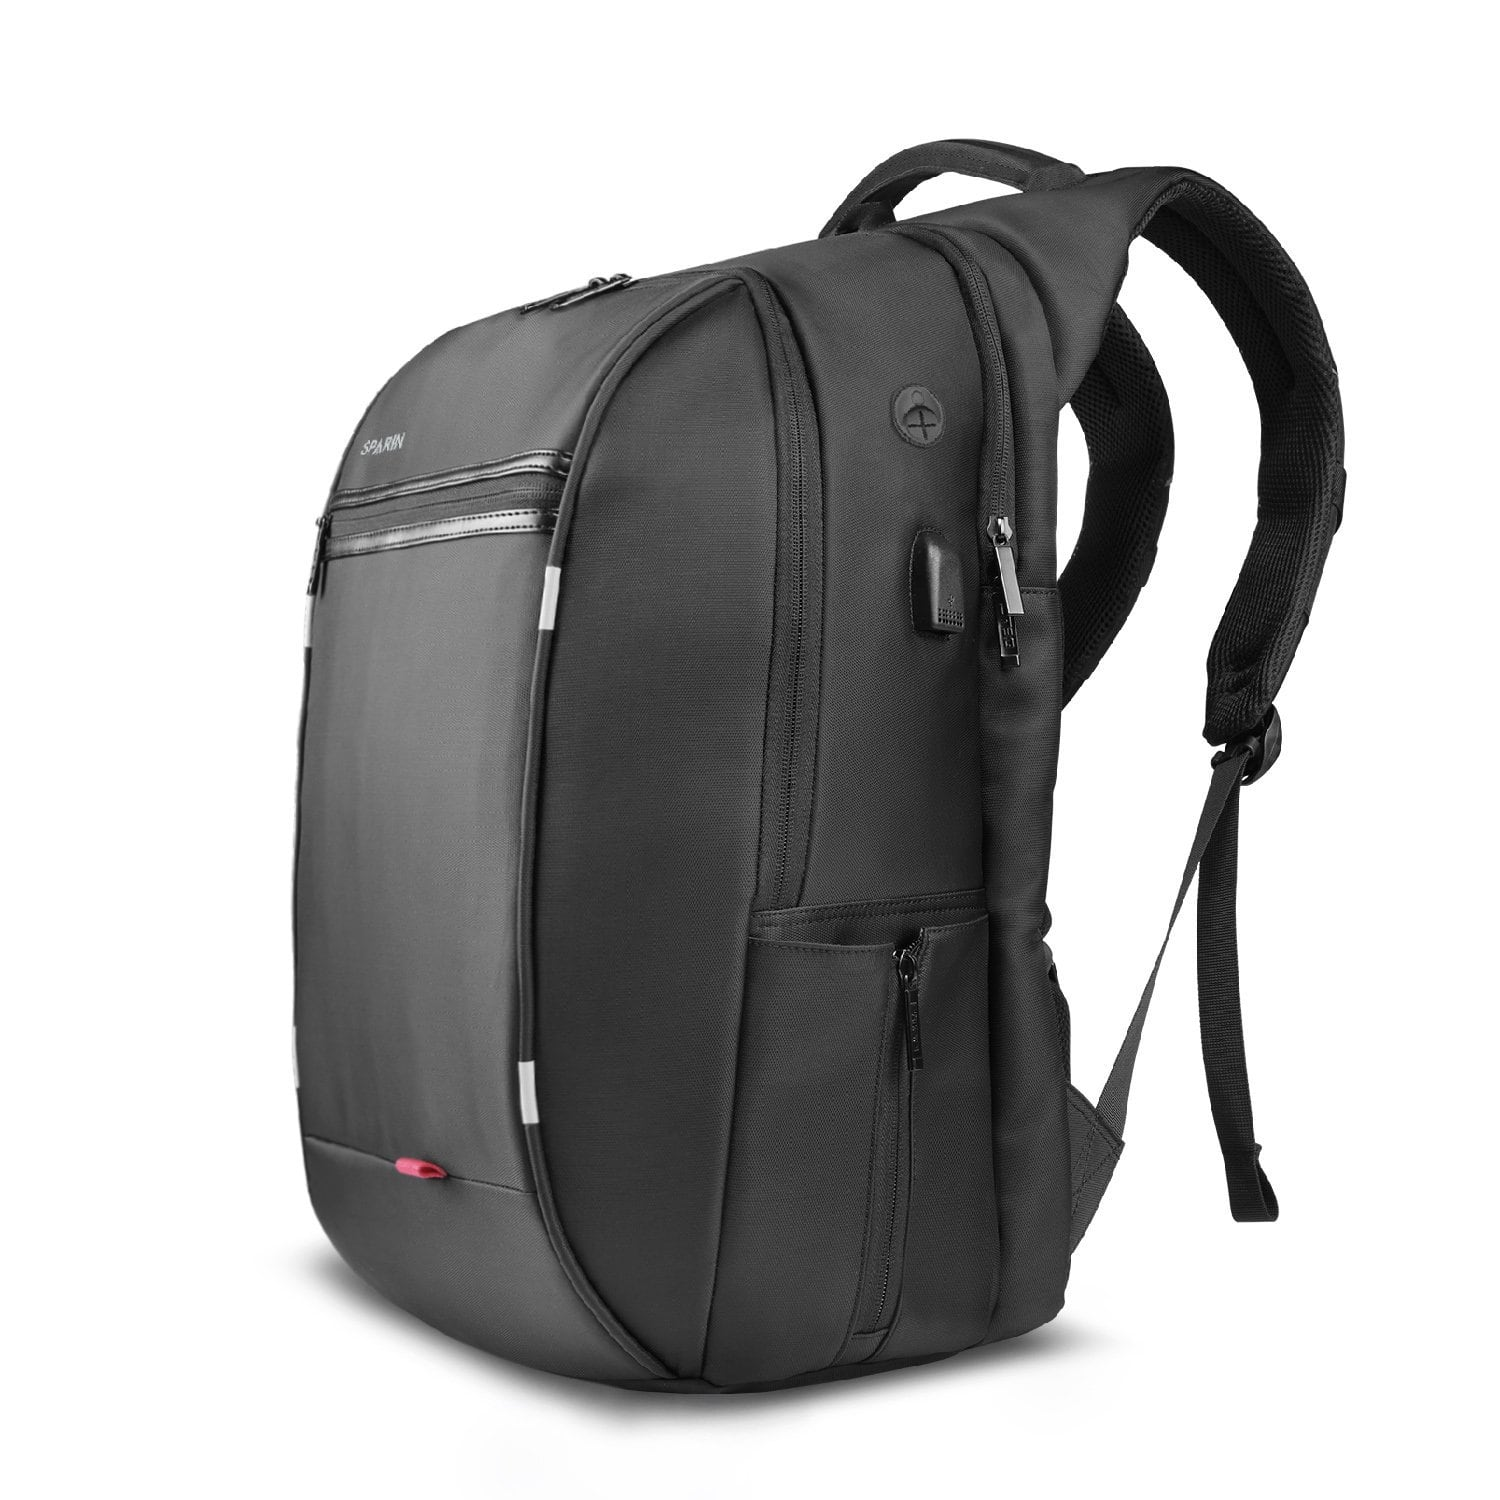 SPARIN Laptop Backpack, For Up to 17.3-Inch Laptops / USB Charging Port / Anti Thief College Shoulder Backpack Business Laptop Backpack, Black $12.99